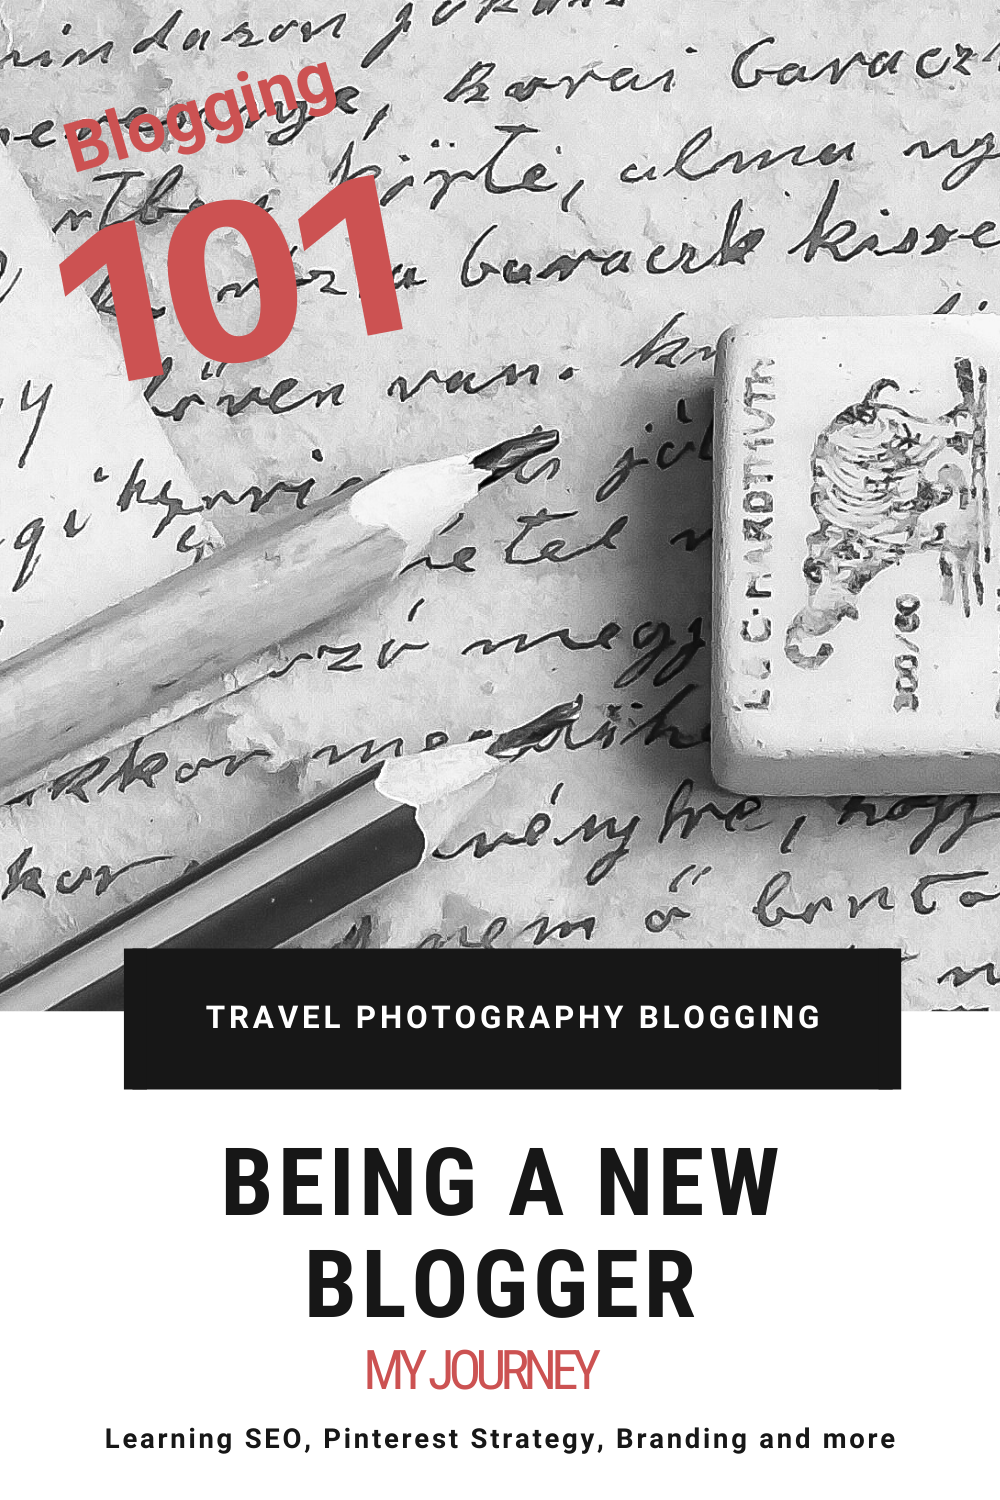 Are you setting up a new blog? Learn about what it's like to set up a new travel photography blog, learning SEO for blogs, Pinterest Strategy, Branding a website and other creative ideas to become a successful blogger. The first 3 months of blog life. Find inspiration for your blogging project. #blogging #travelblogs #photographyblogs